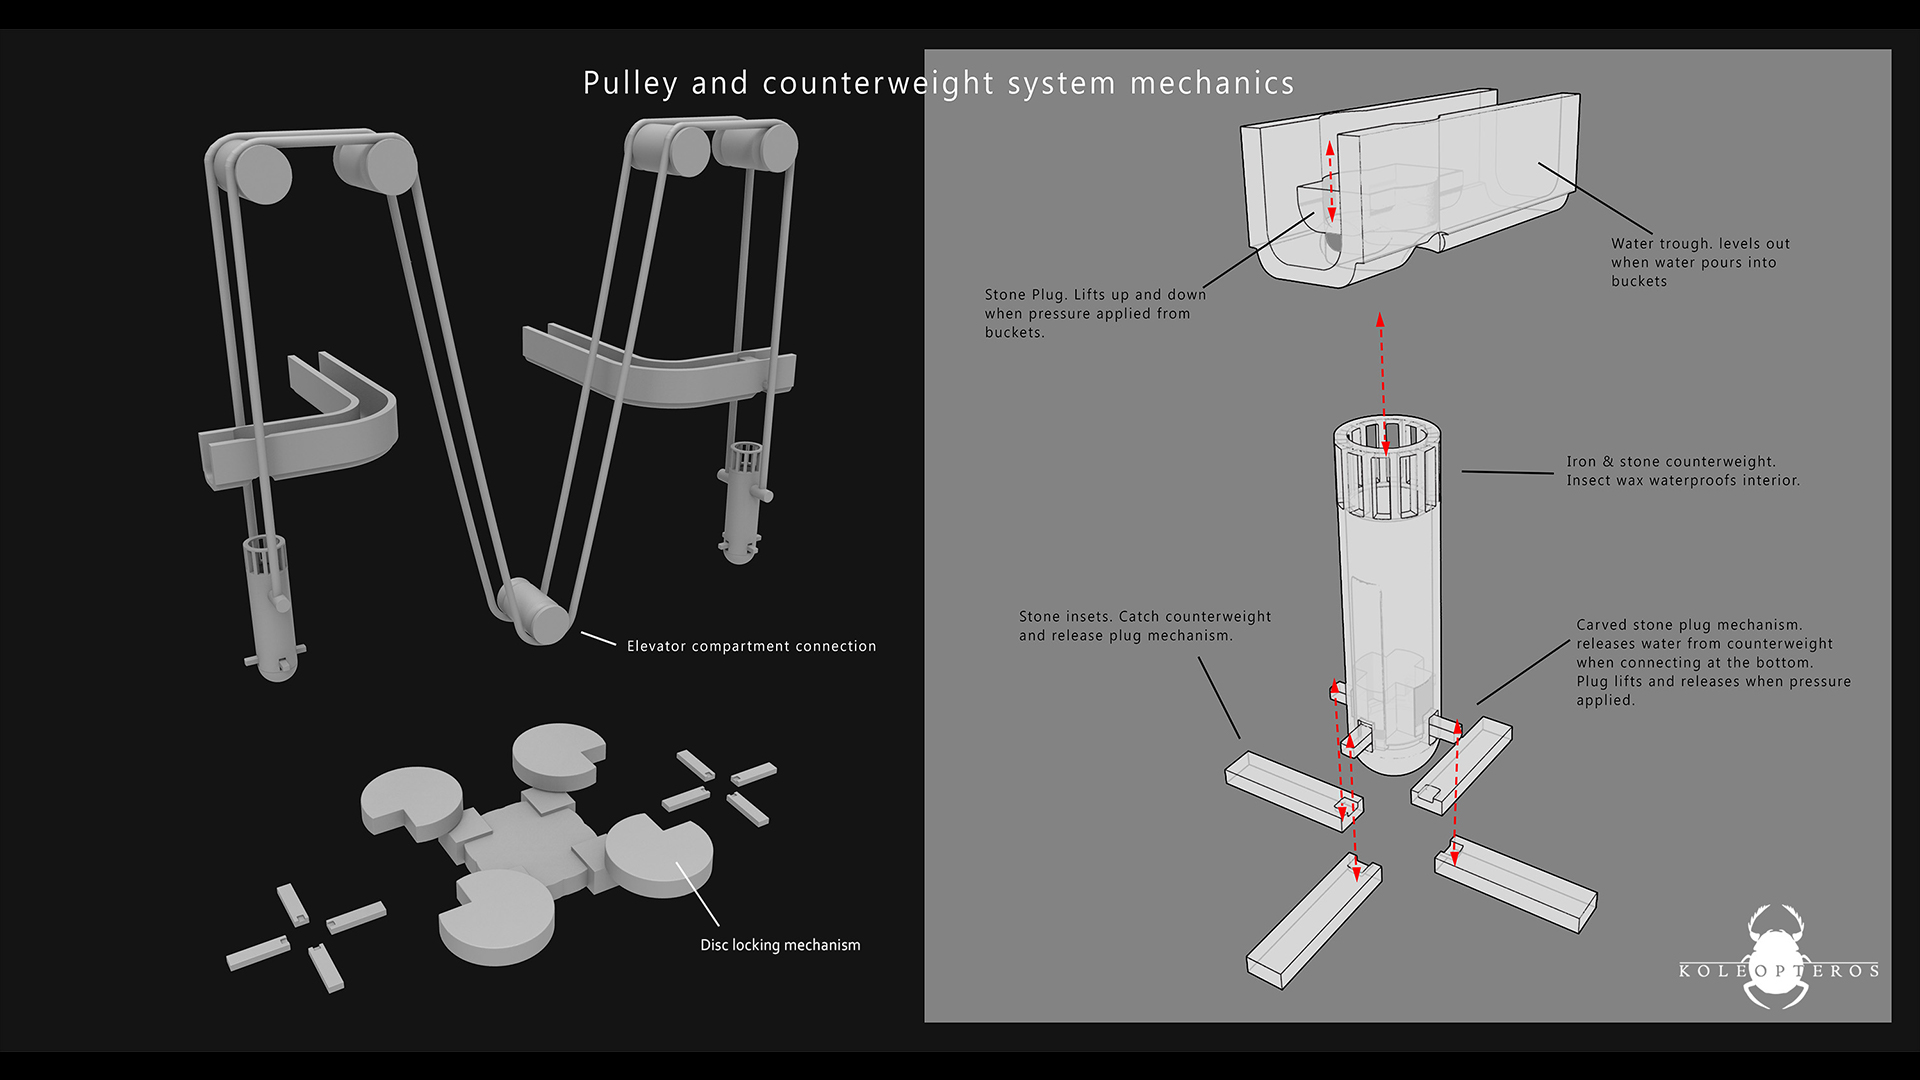 Pulley and conterweight mechanics_Jamescombridge1920x1080.jpg